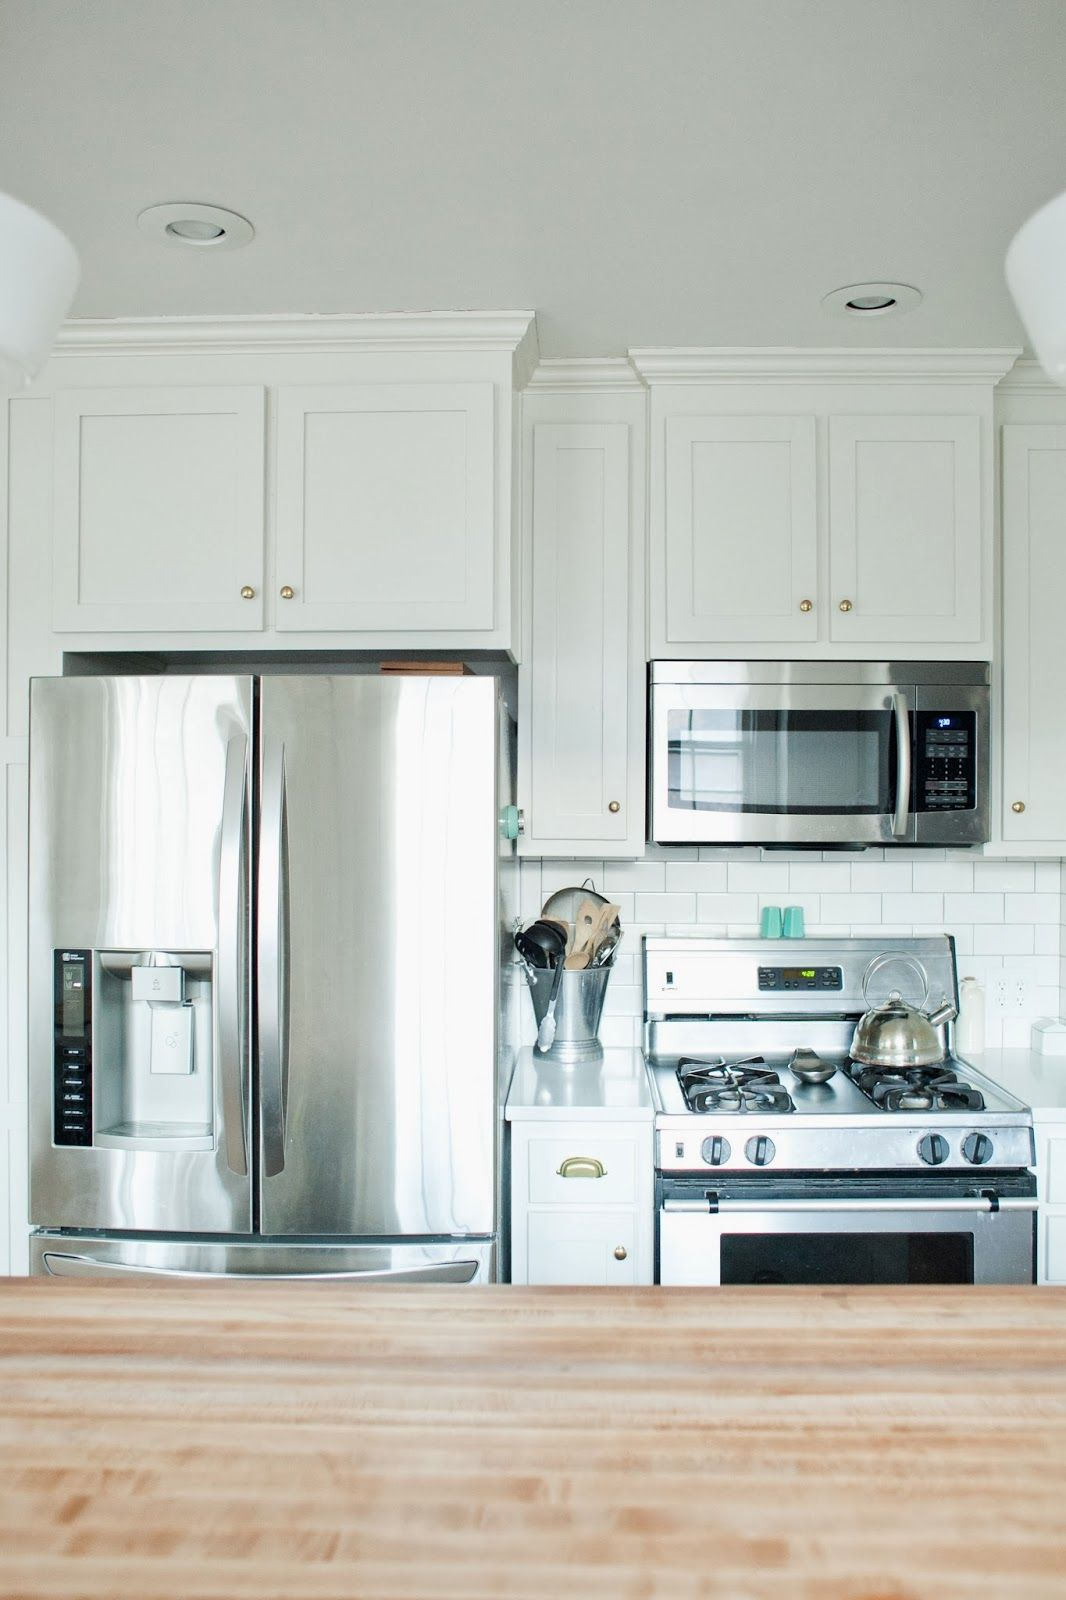 refrigerator for small kitchen braided chair pads chairs fridge and stove next to each other google search